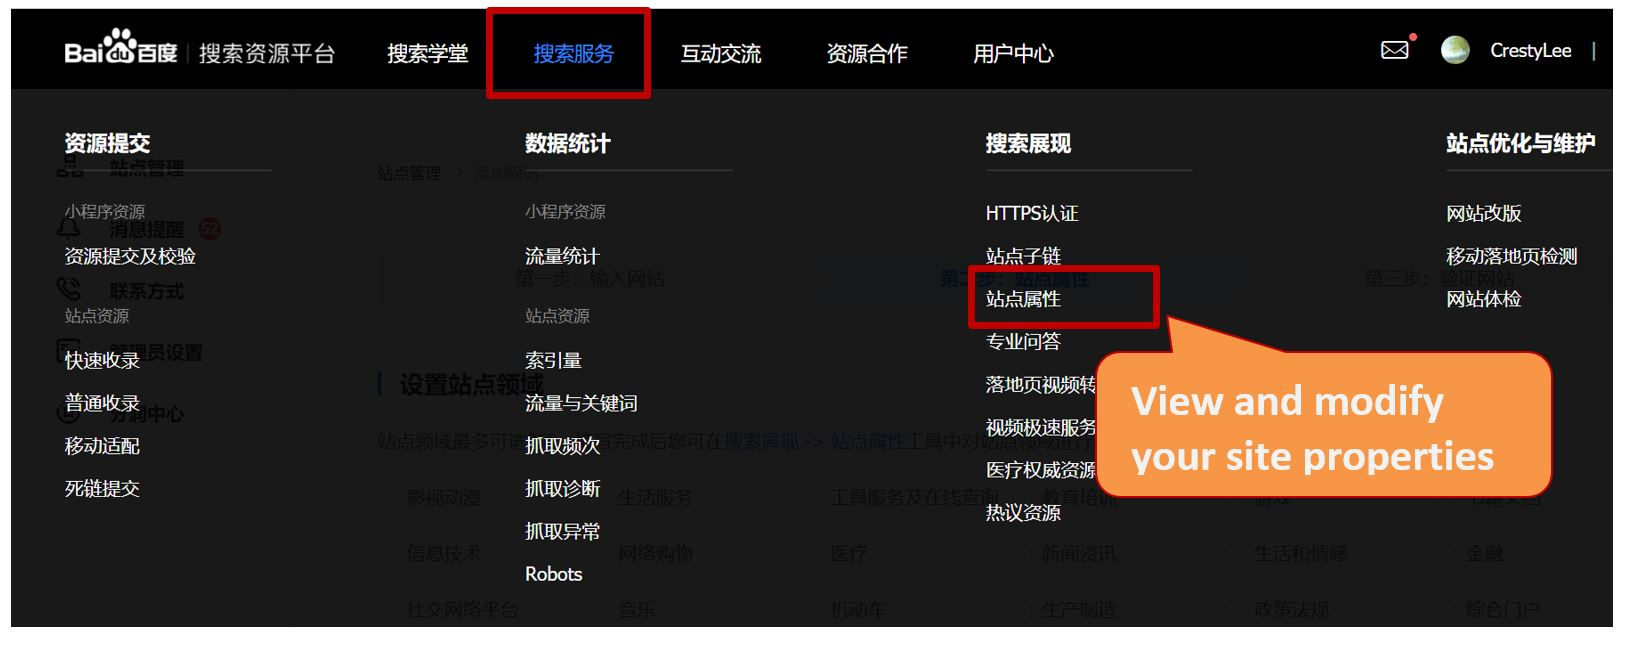 5. Baidu Webmaster Tools - How to view and modify your site categories